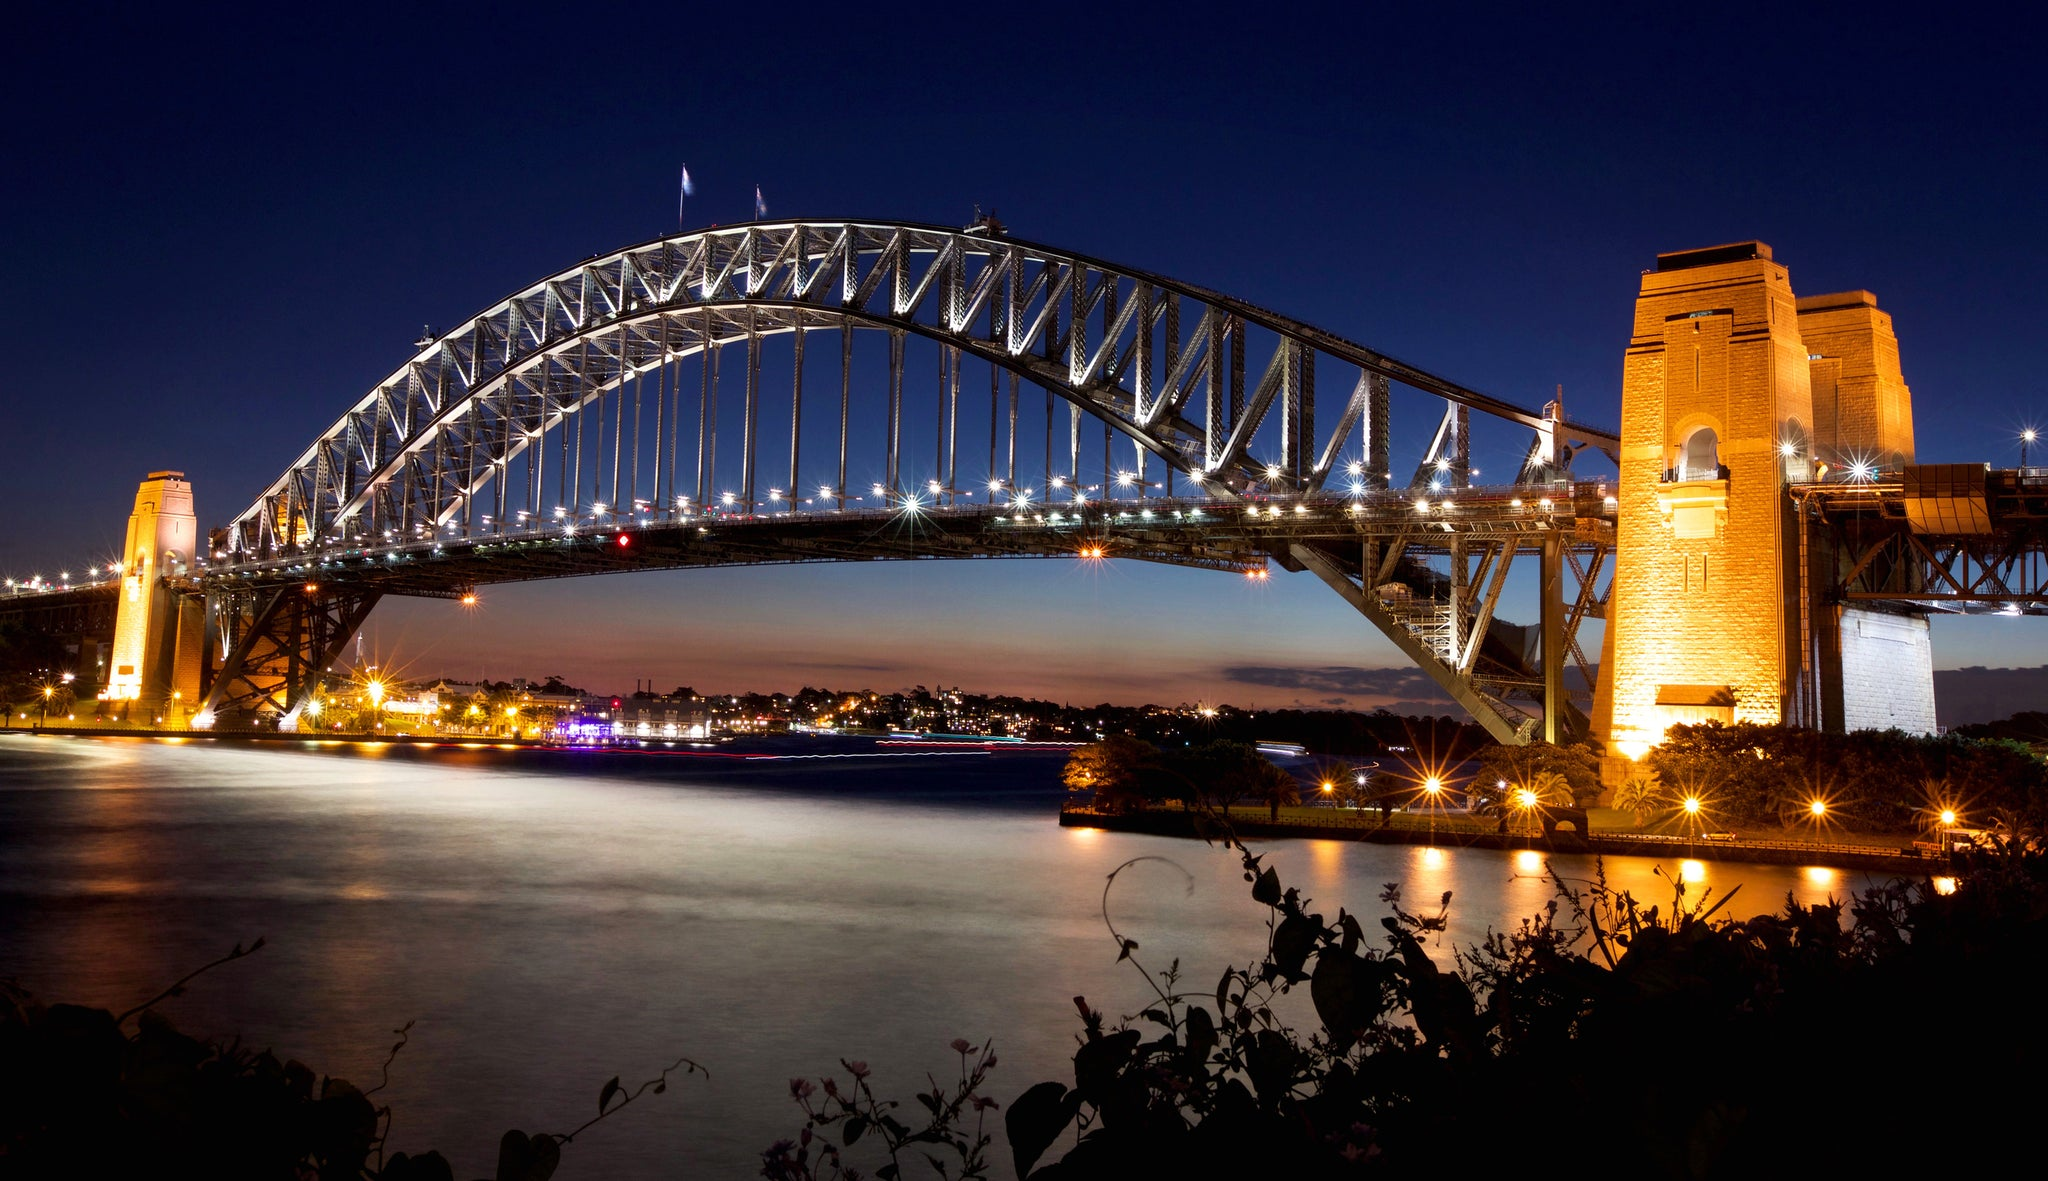 Sydney Harbour Bridge, Fine Art Photography, Milsons Point, Sydney